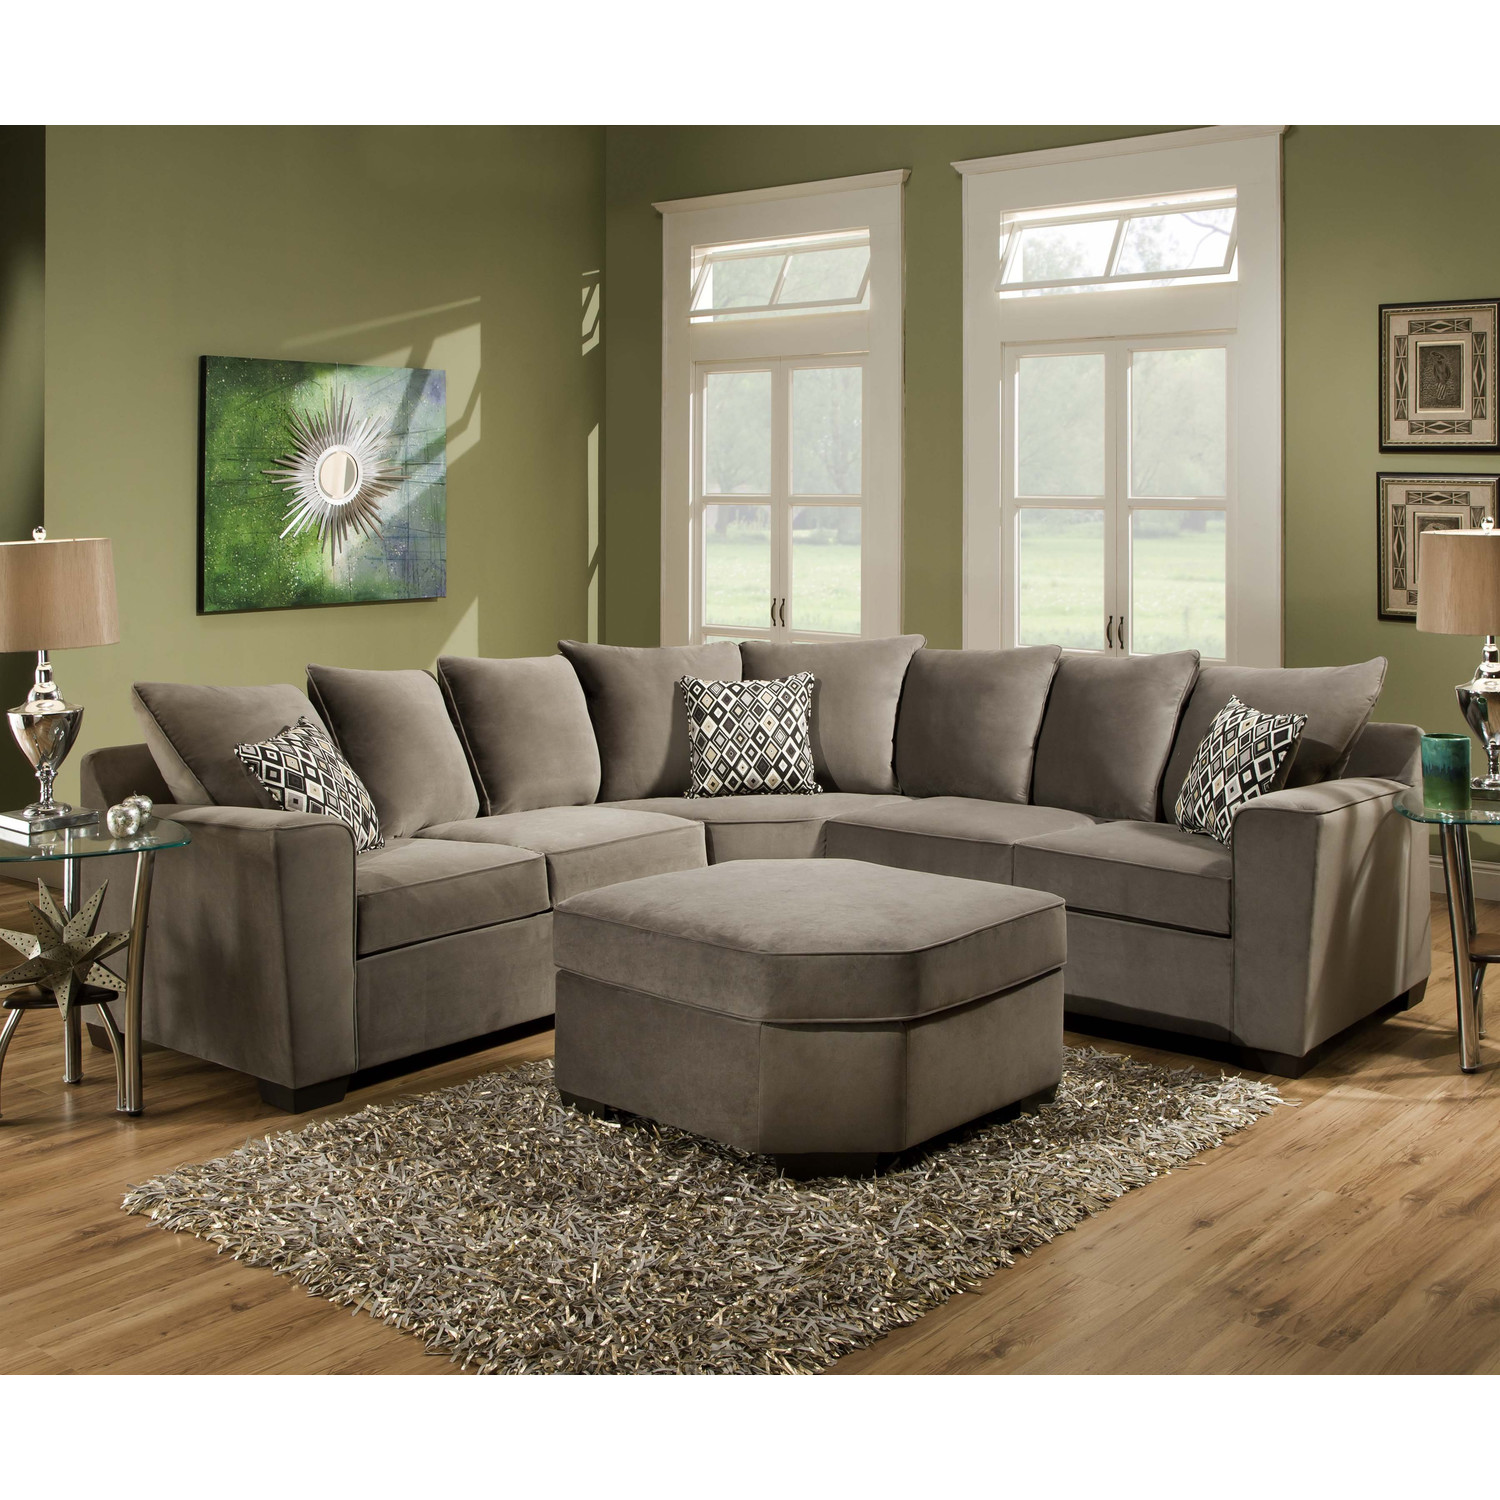 Large Sectional Sofas | Extra Large Sectional Sofa | Large Deep Sectional Sofas